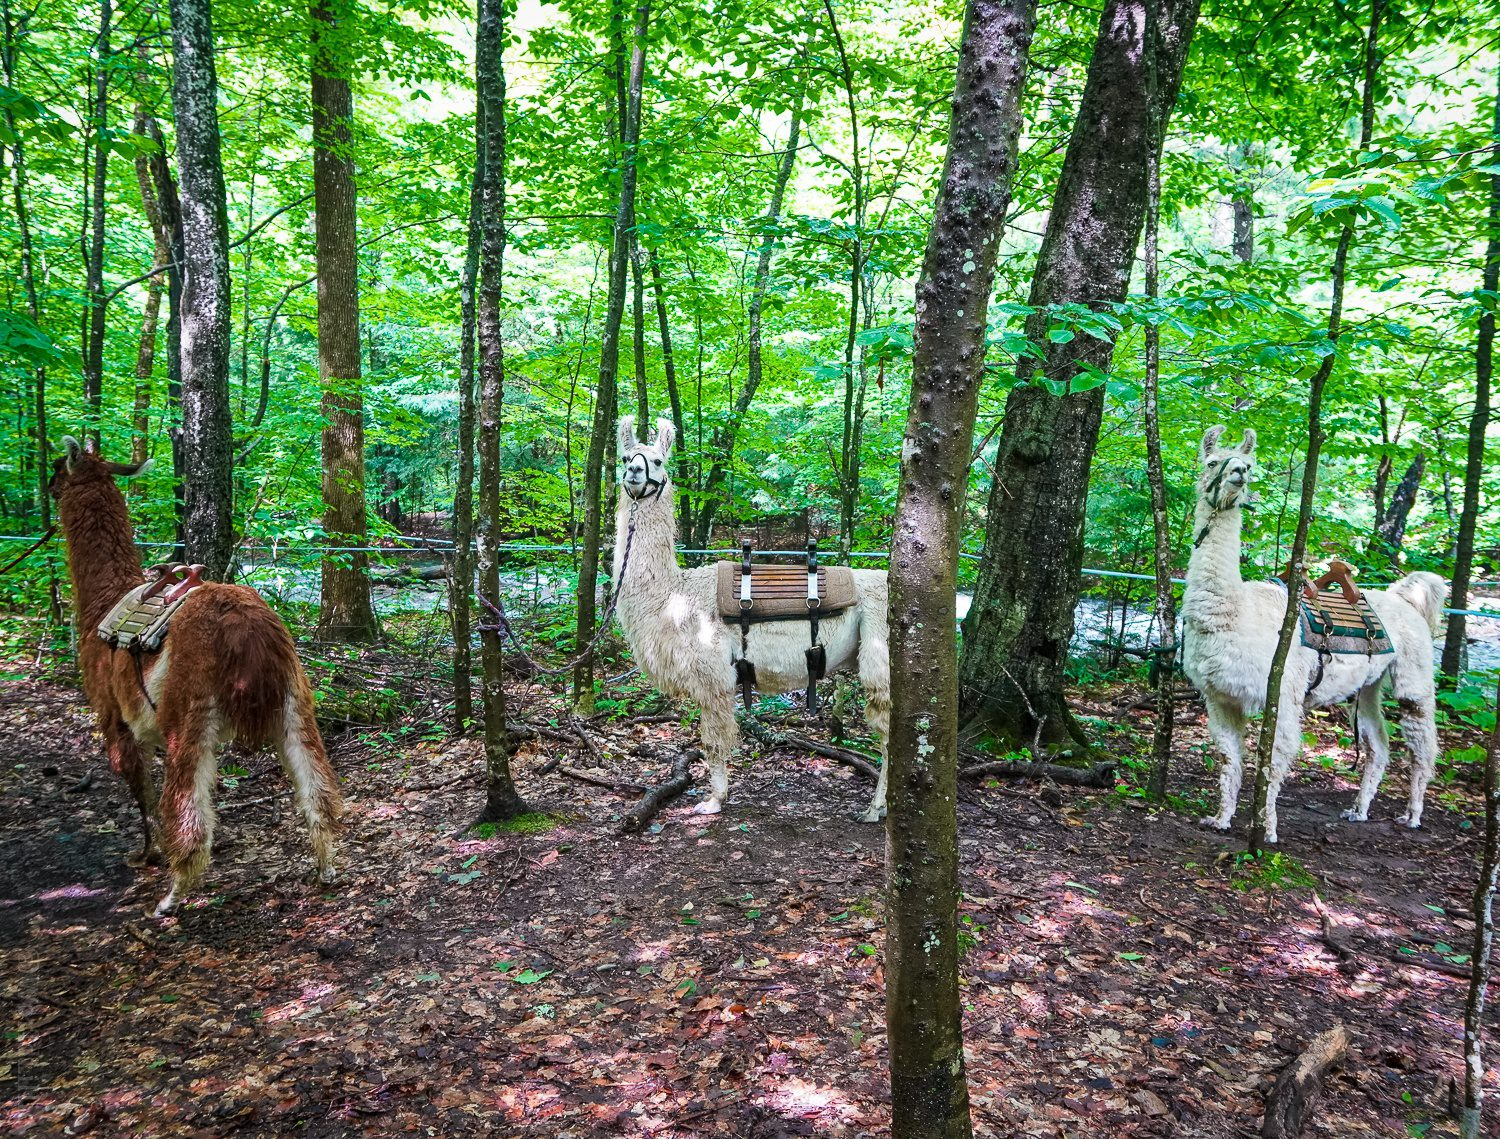 Our llama trek stopped by the river for a picnic.